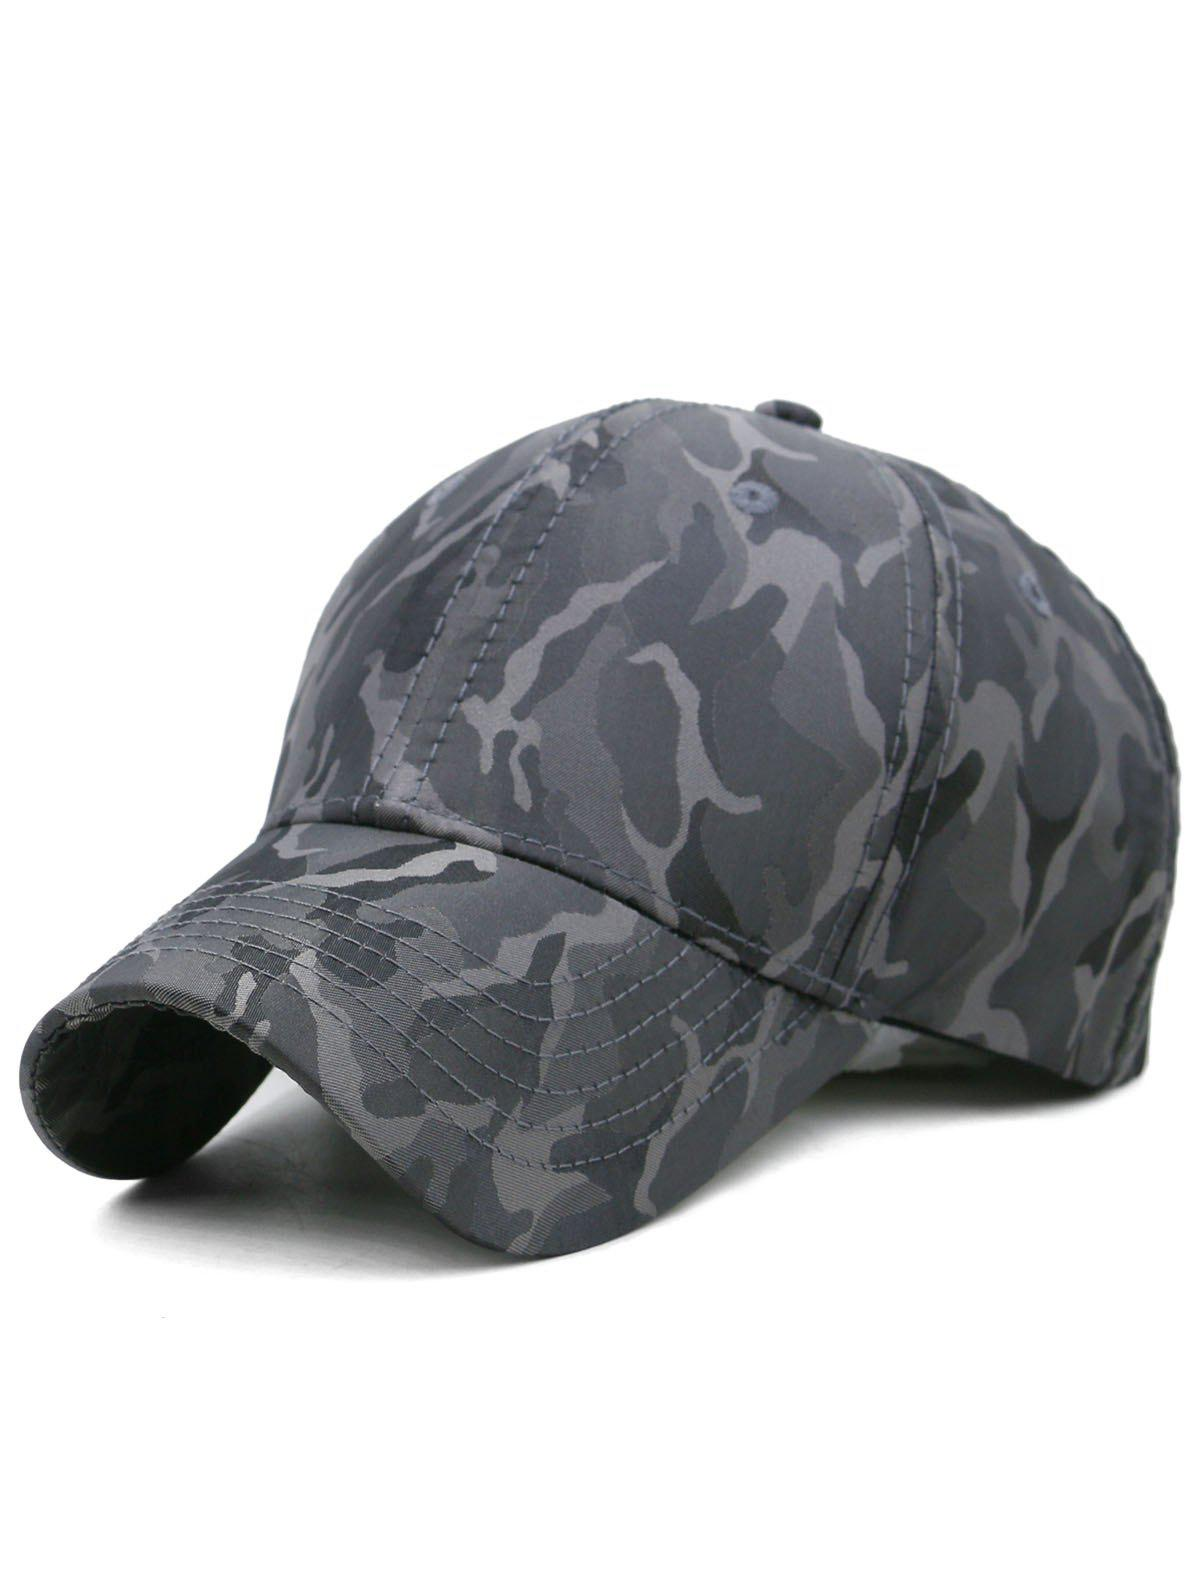 Chic Outdoor Camo Printed Adjustable Trucker Hat